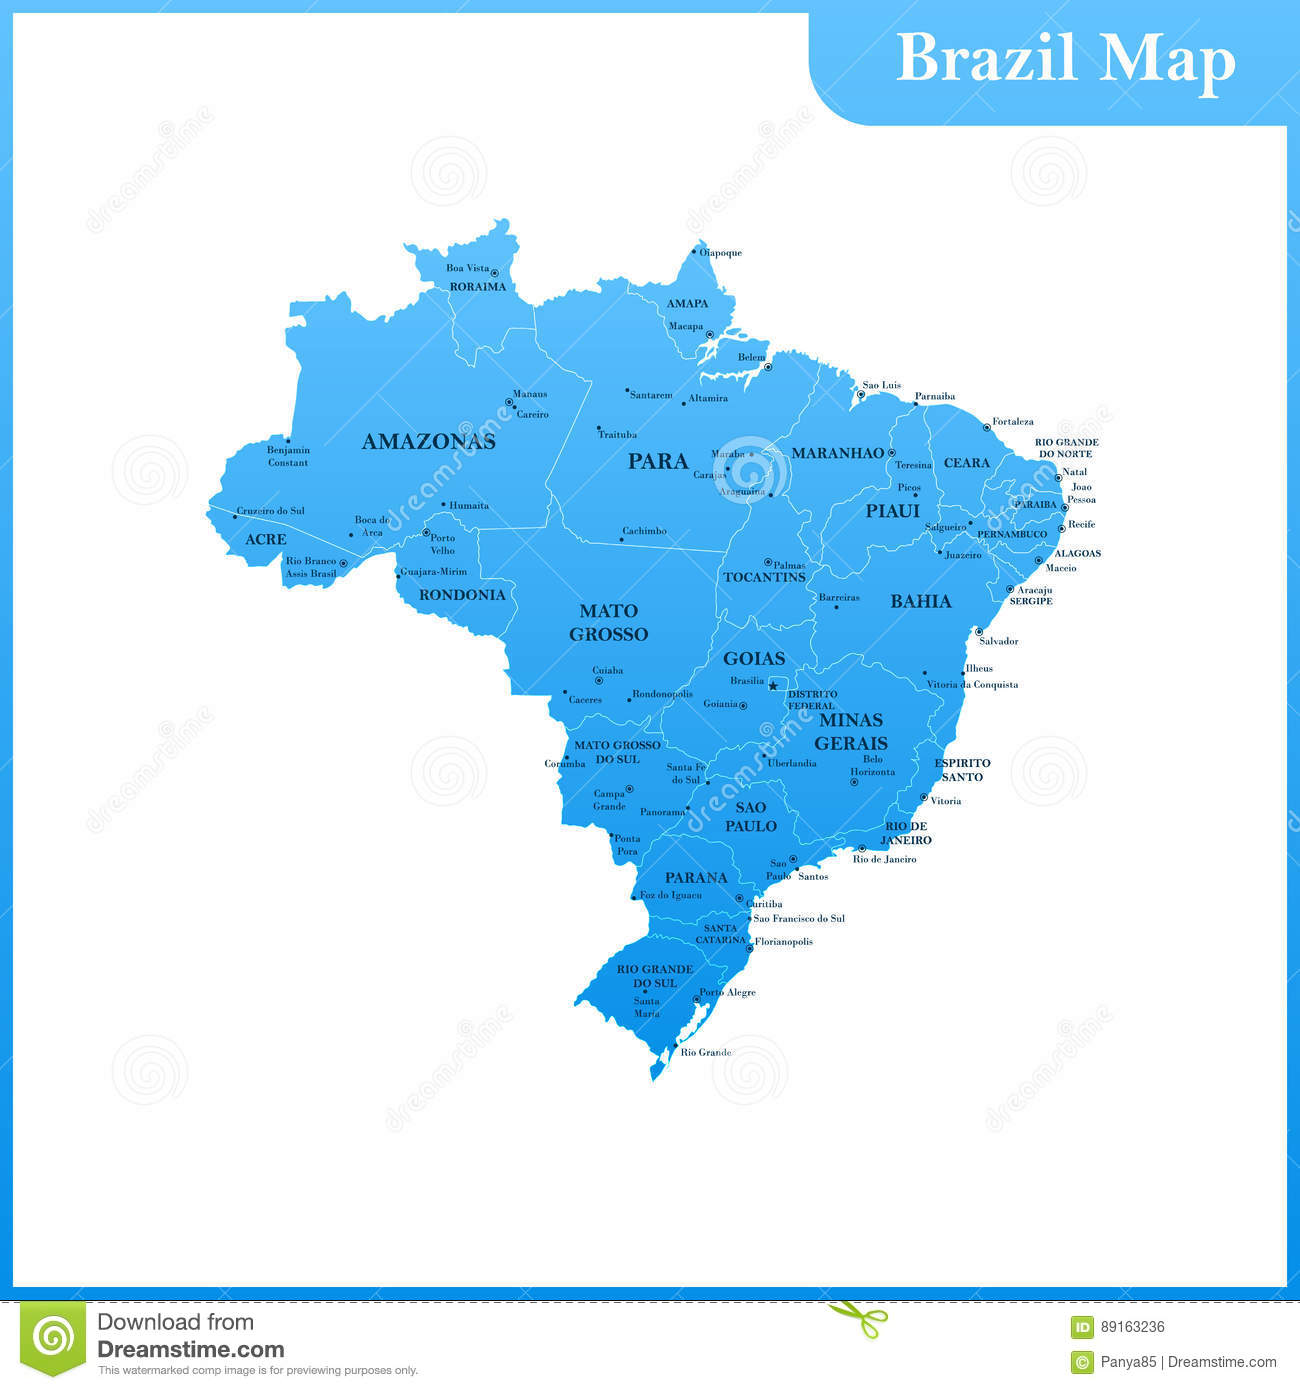 The Detailed Map Of The Brazil With Regions Or States And Cities - Brazil states map